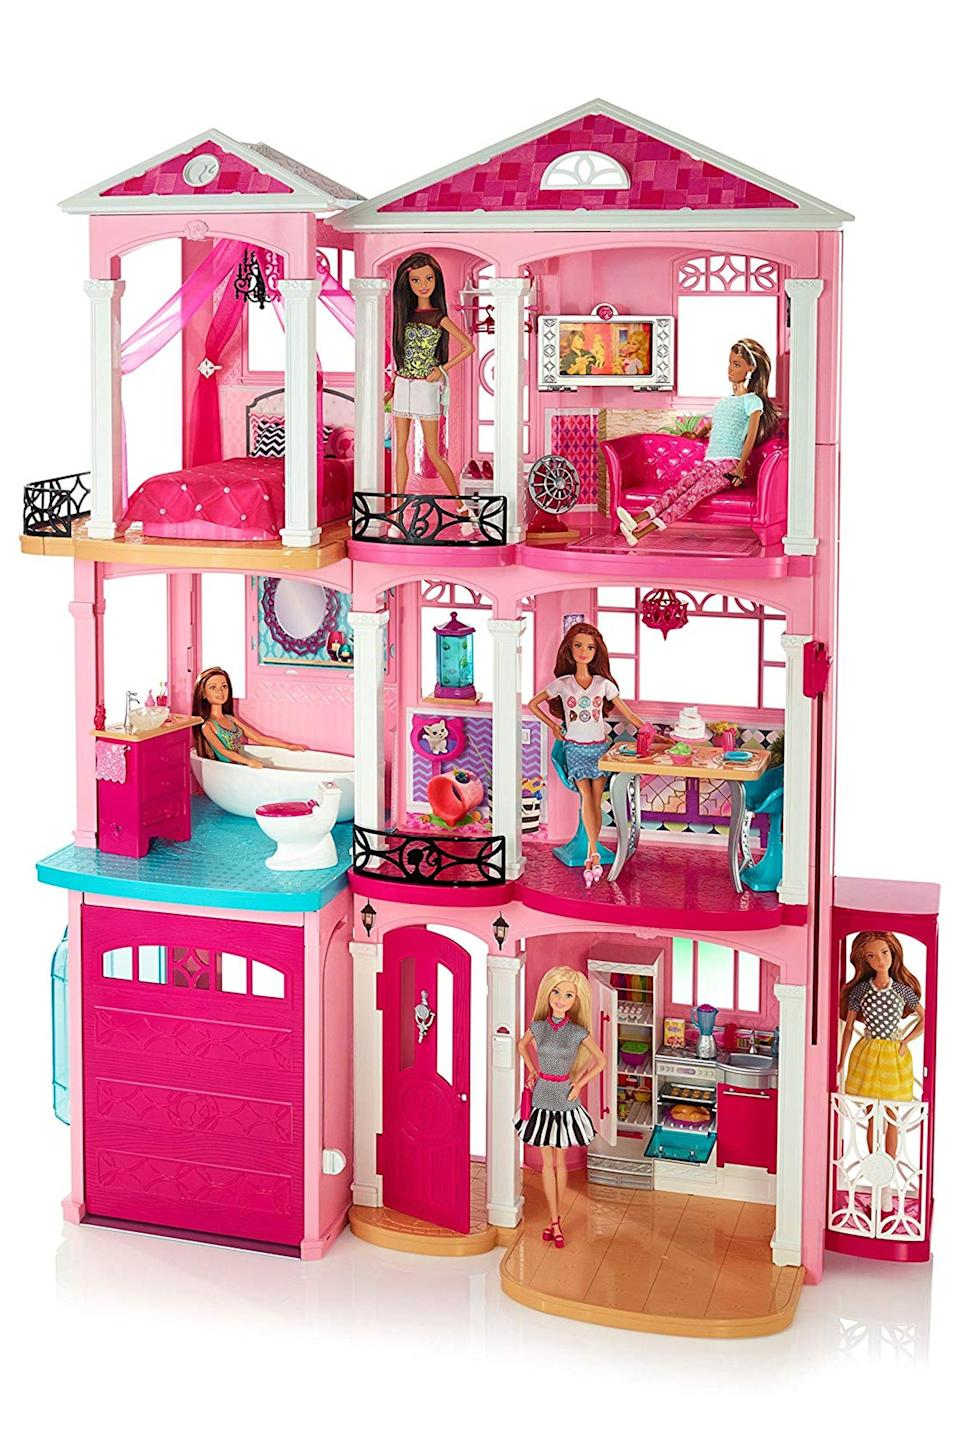 "<p><strong>Barbie</strong></p><p>amazon.com</p><p><strong>$189.86</strong></p><p><a href=""http://www.amazon.com/dp/B00T03U6AC/?tag=syn-yahoo-20&ascsubtag=%5Bartid%7C10067.g.12475659%5Bsrc%7Cyahoo-us"" rel=""nofollow noopener"" target=""_blank"" data-ylk=""slk:Shop Now"" class=""link rapid-noclick-resp"">Shop Now</a></p><p>Barbie's dream house is quite literally a dream come true for most kids.</p>"